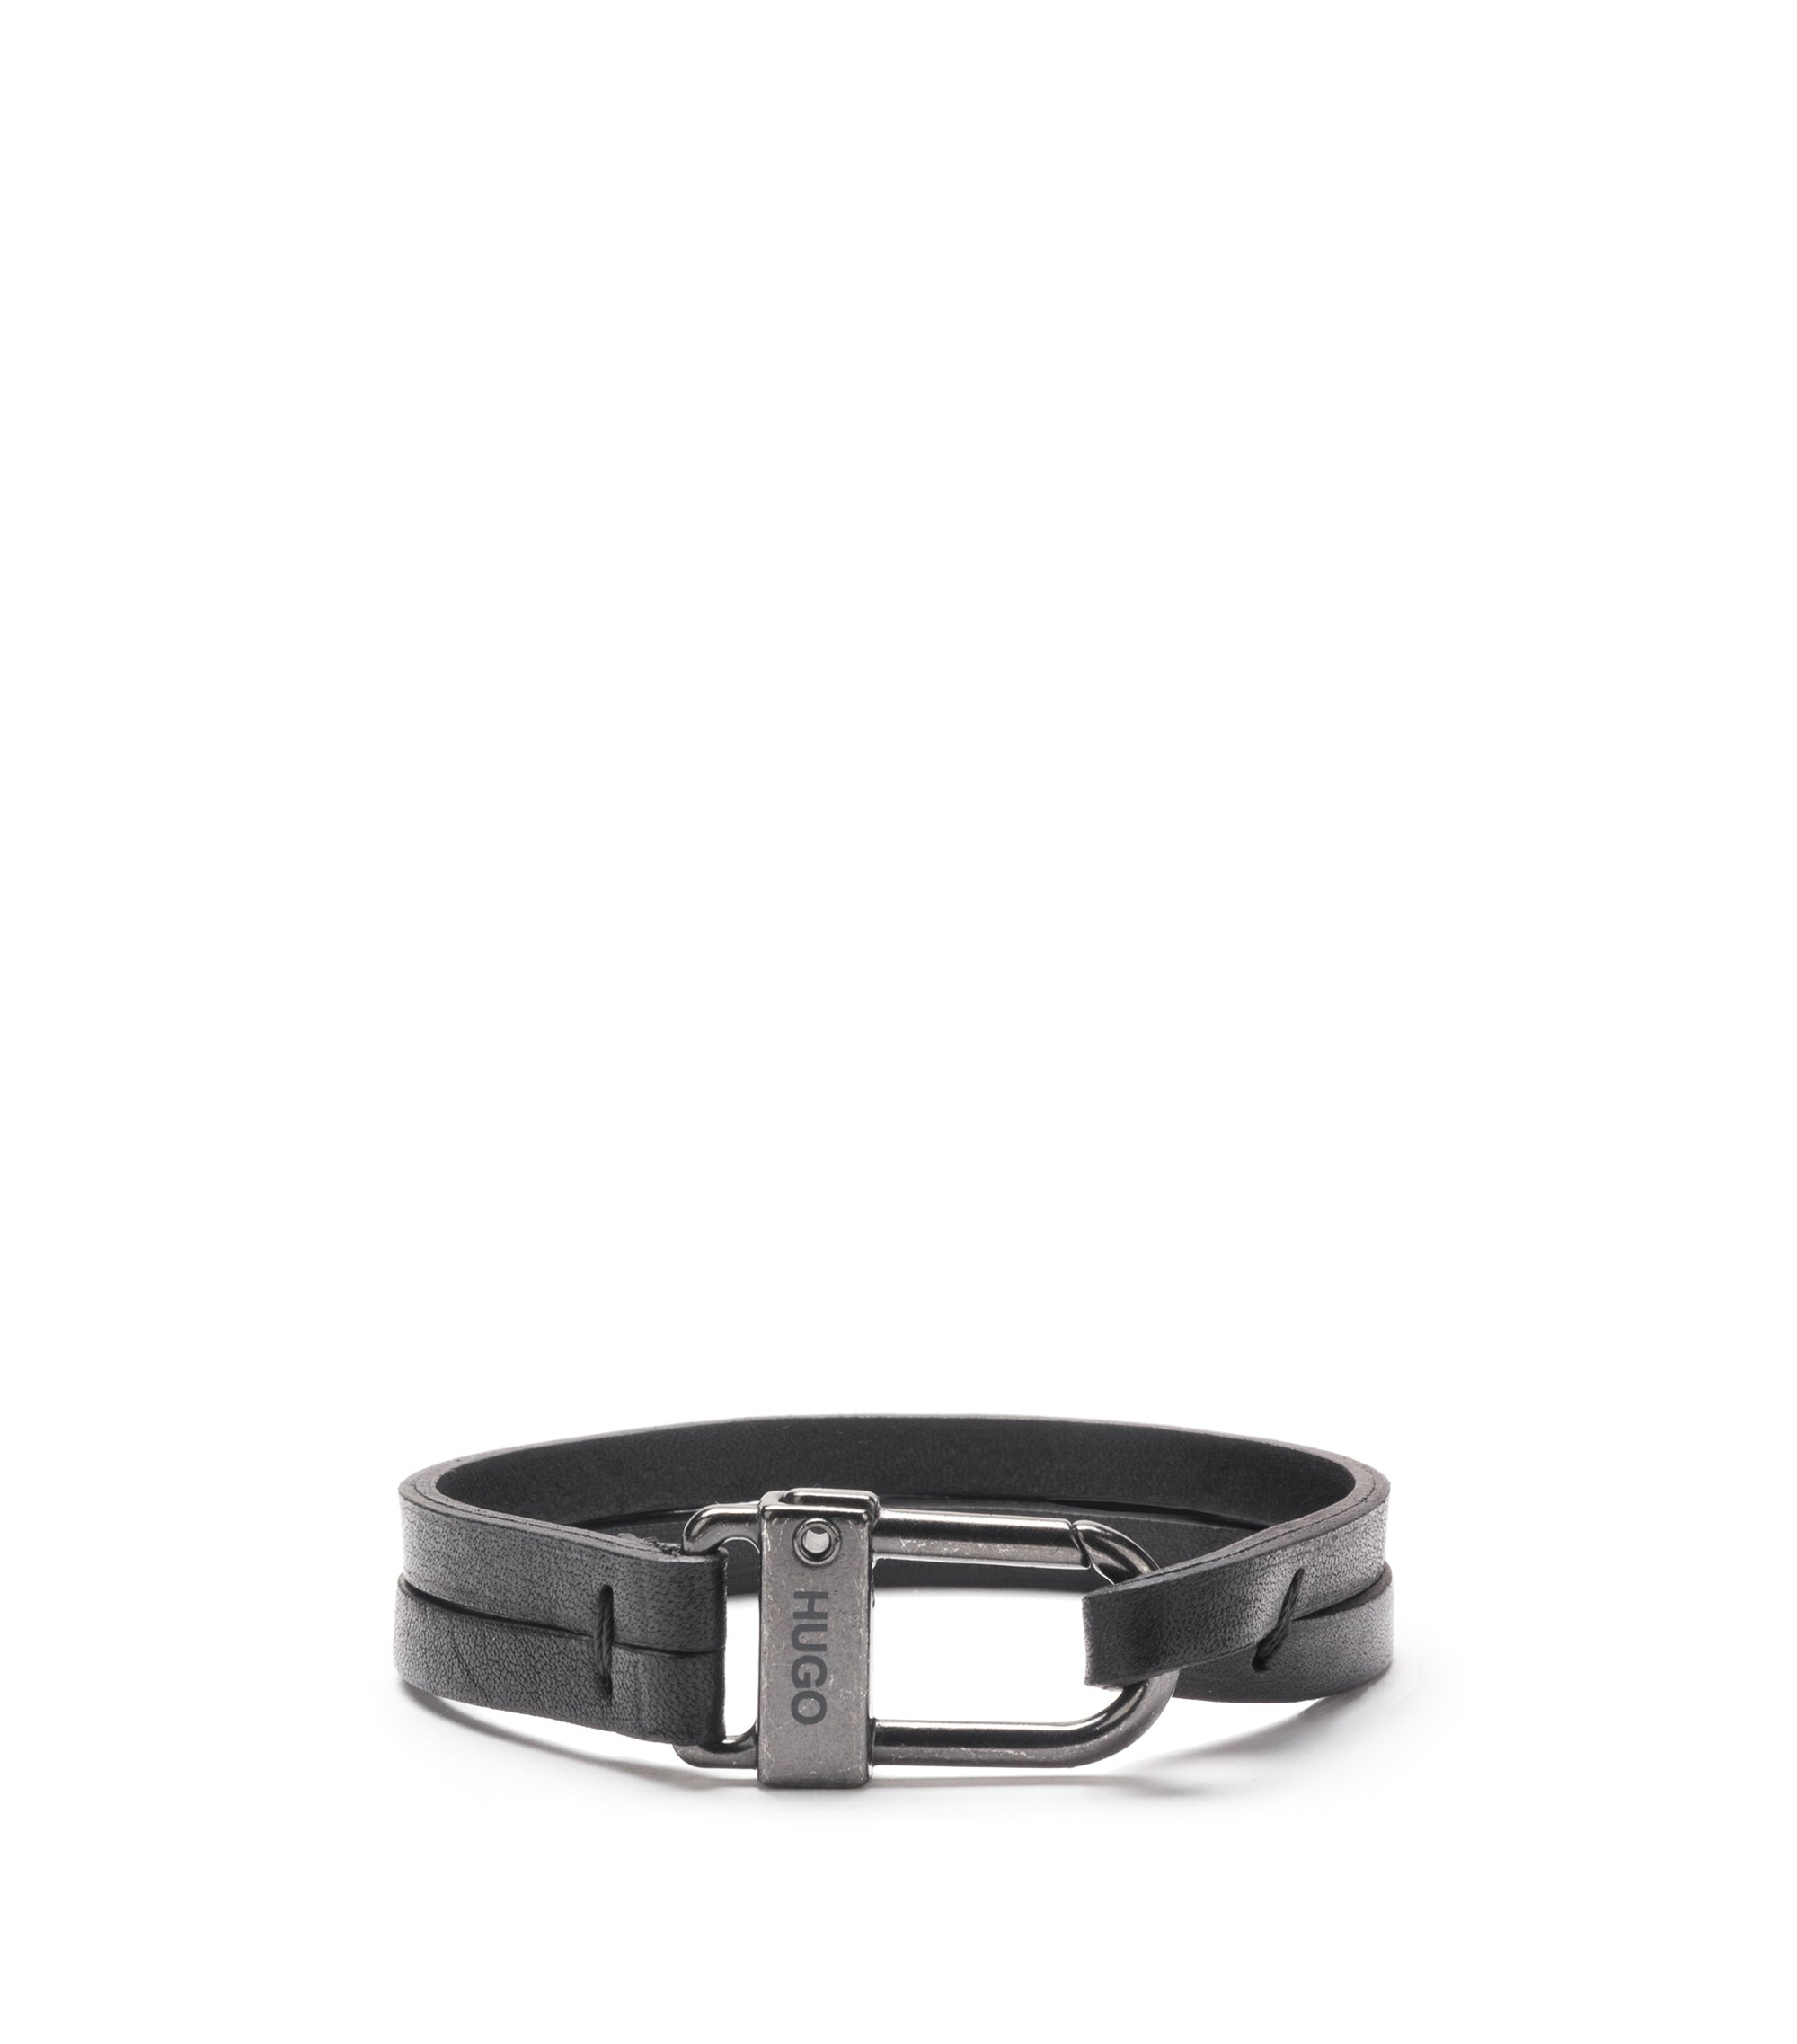 Italian-leather bracelet with carabiner closure, Black